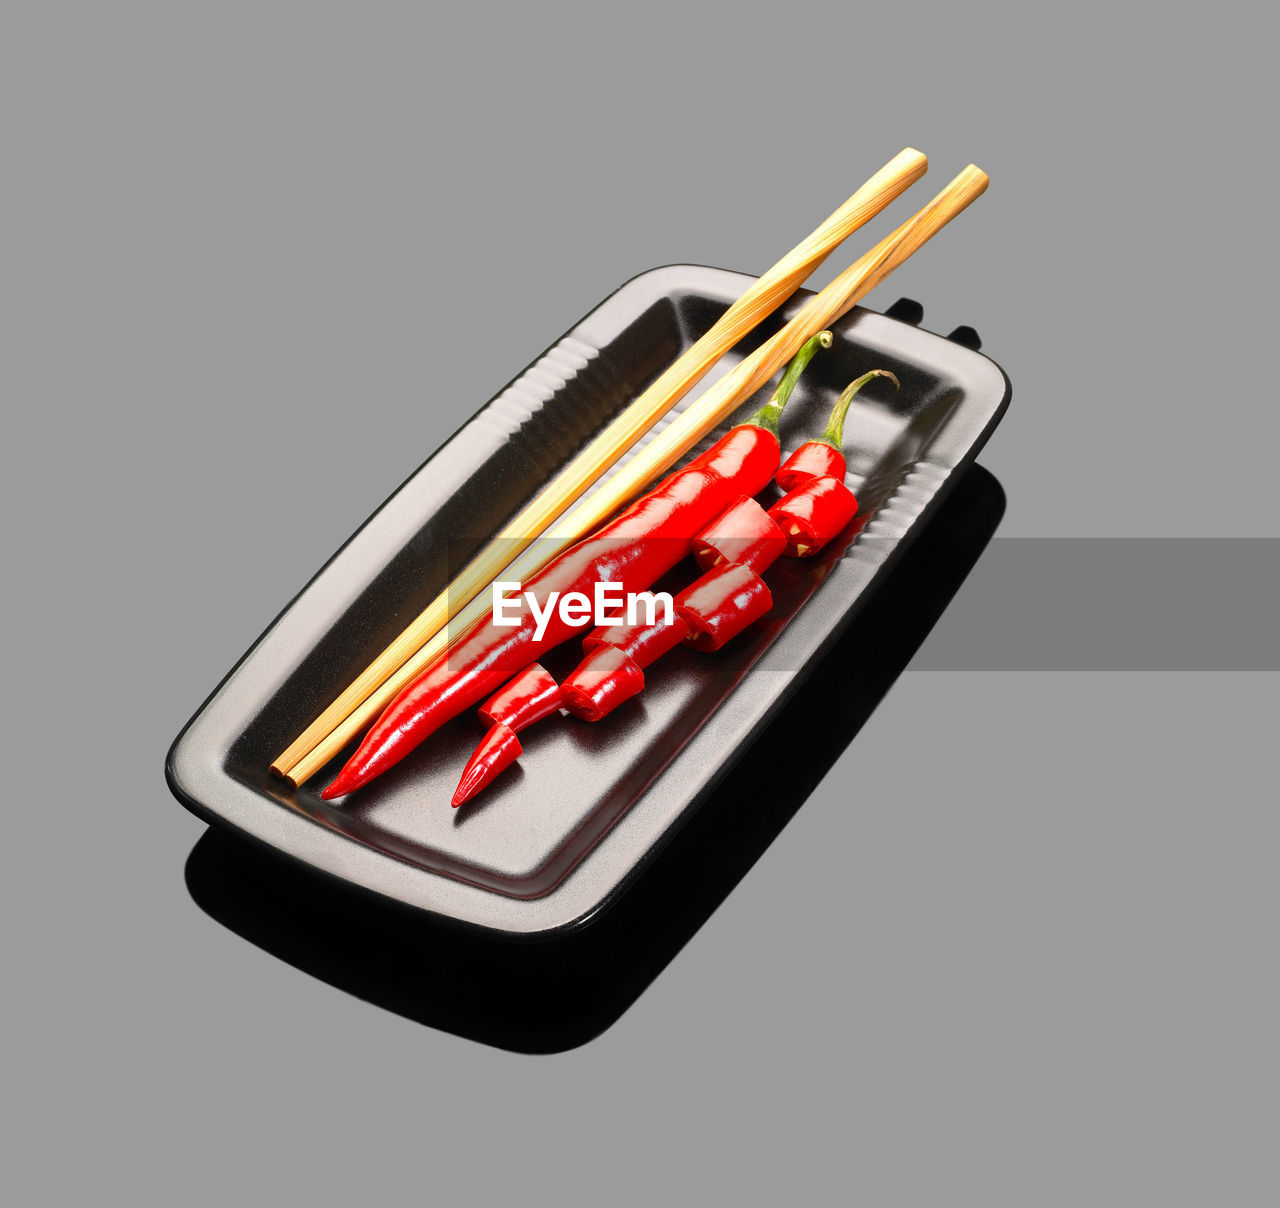 Red chili peppers with chopsticks in tray on gray background